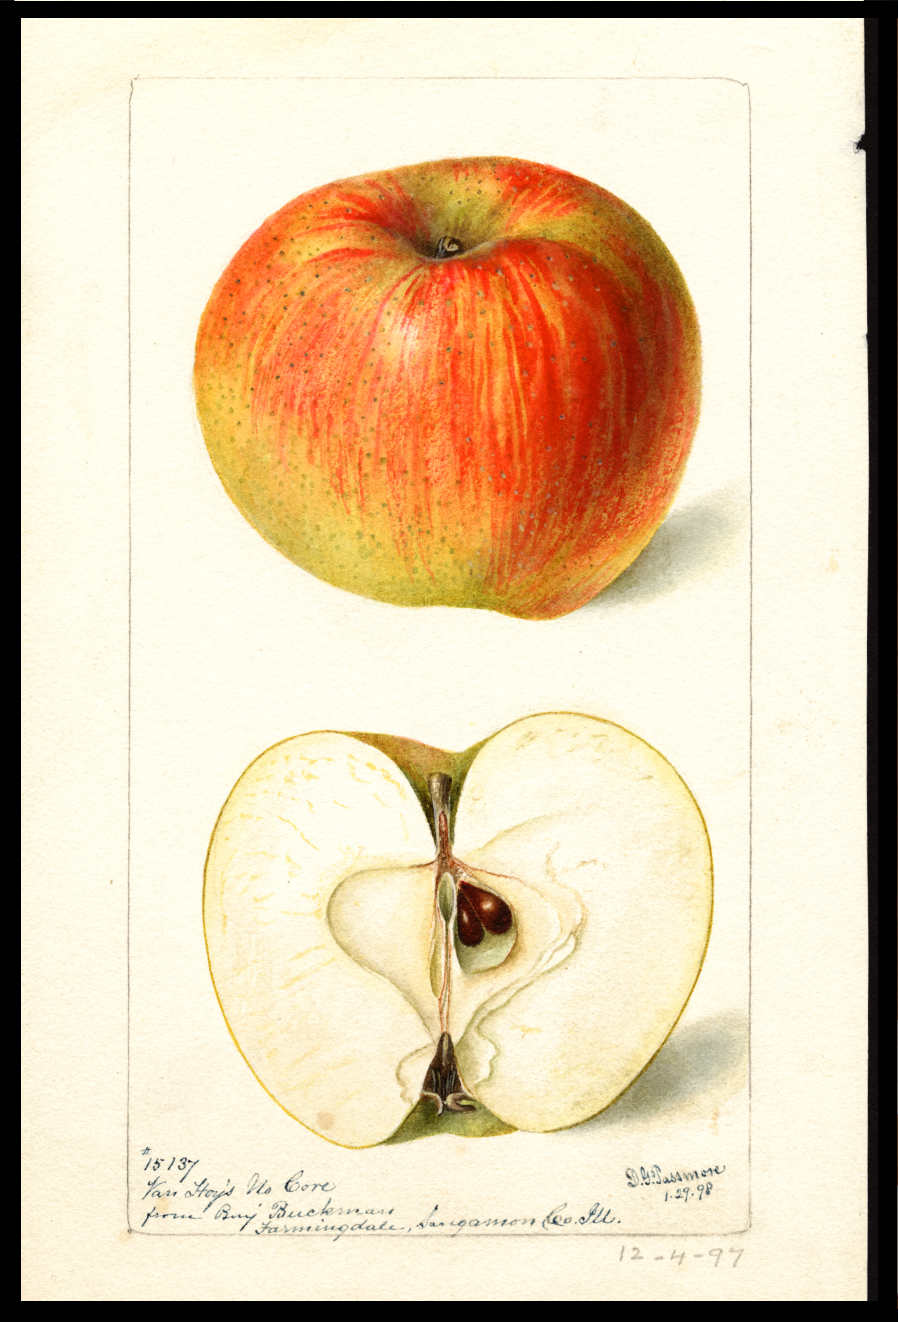 watercolor of a yellow apple with bright red streaks and blush and with numerous small green dots